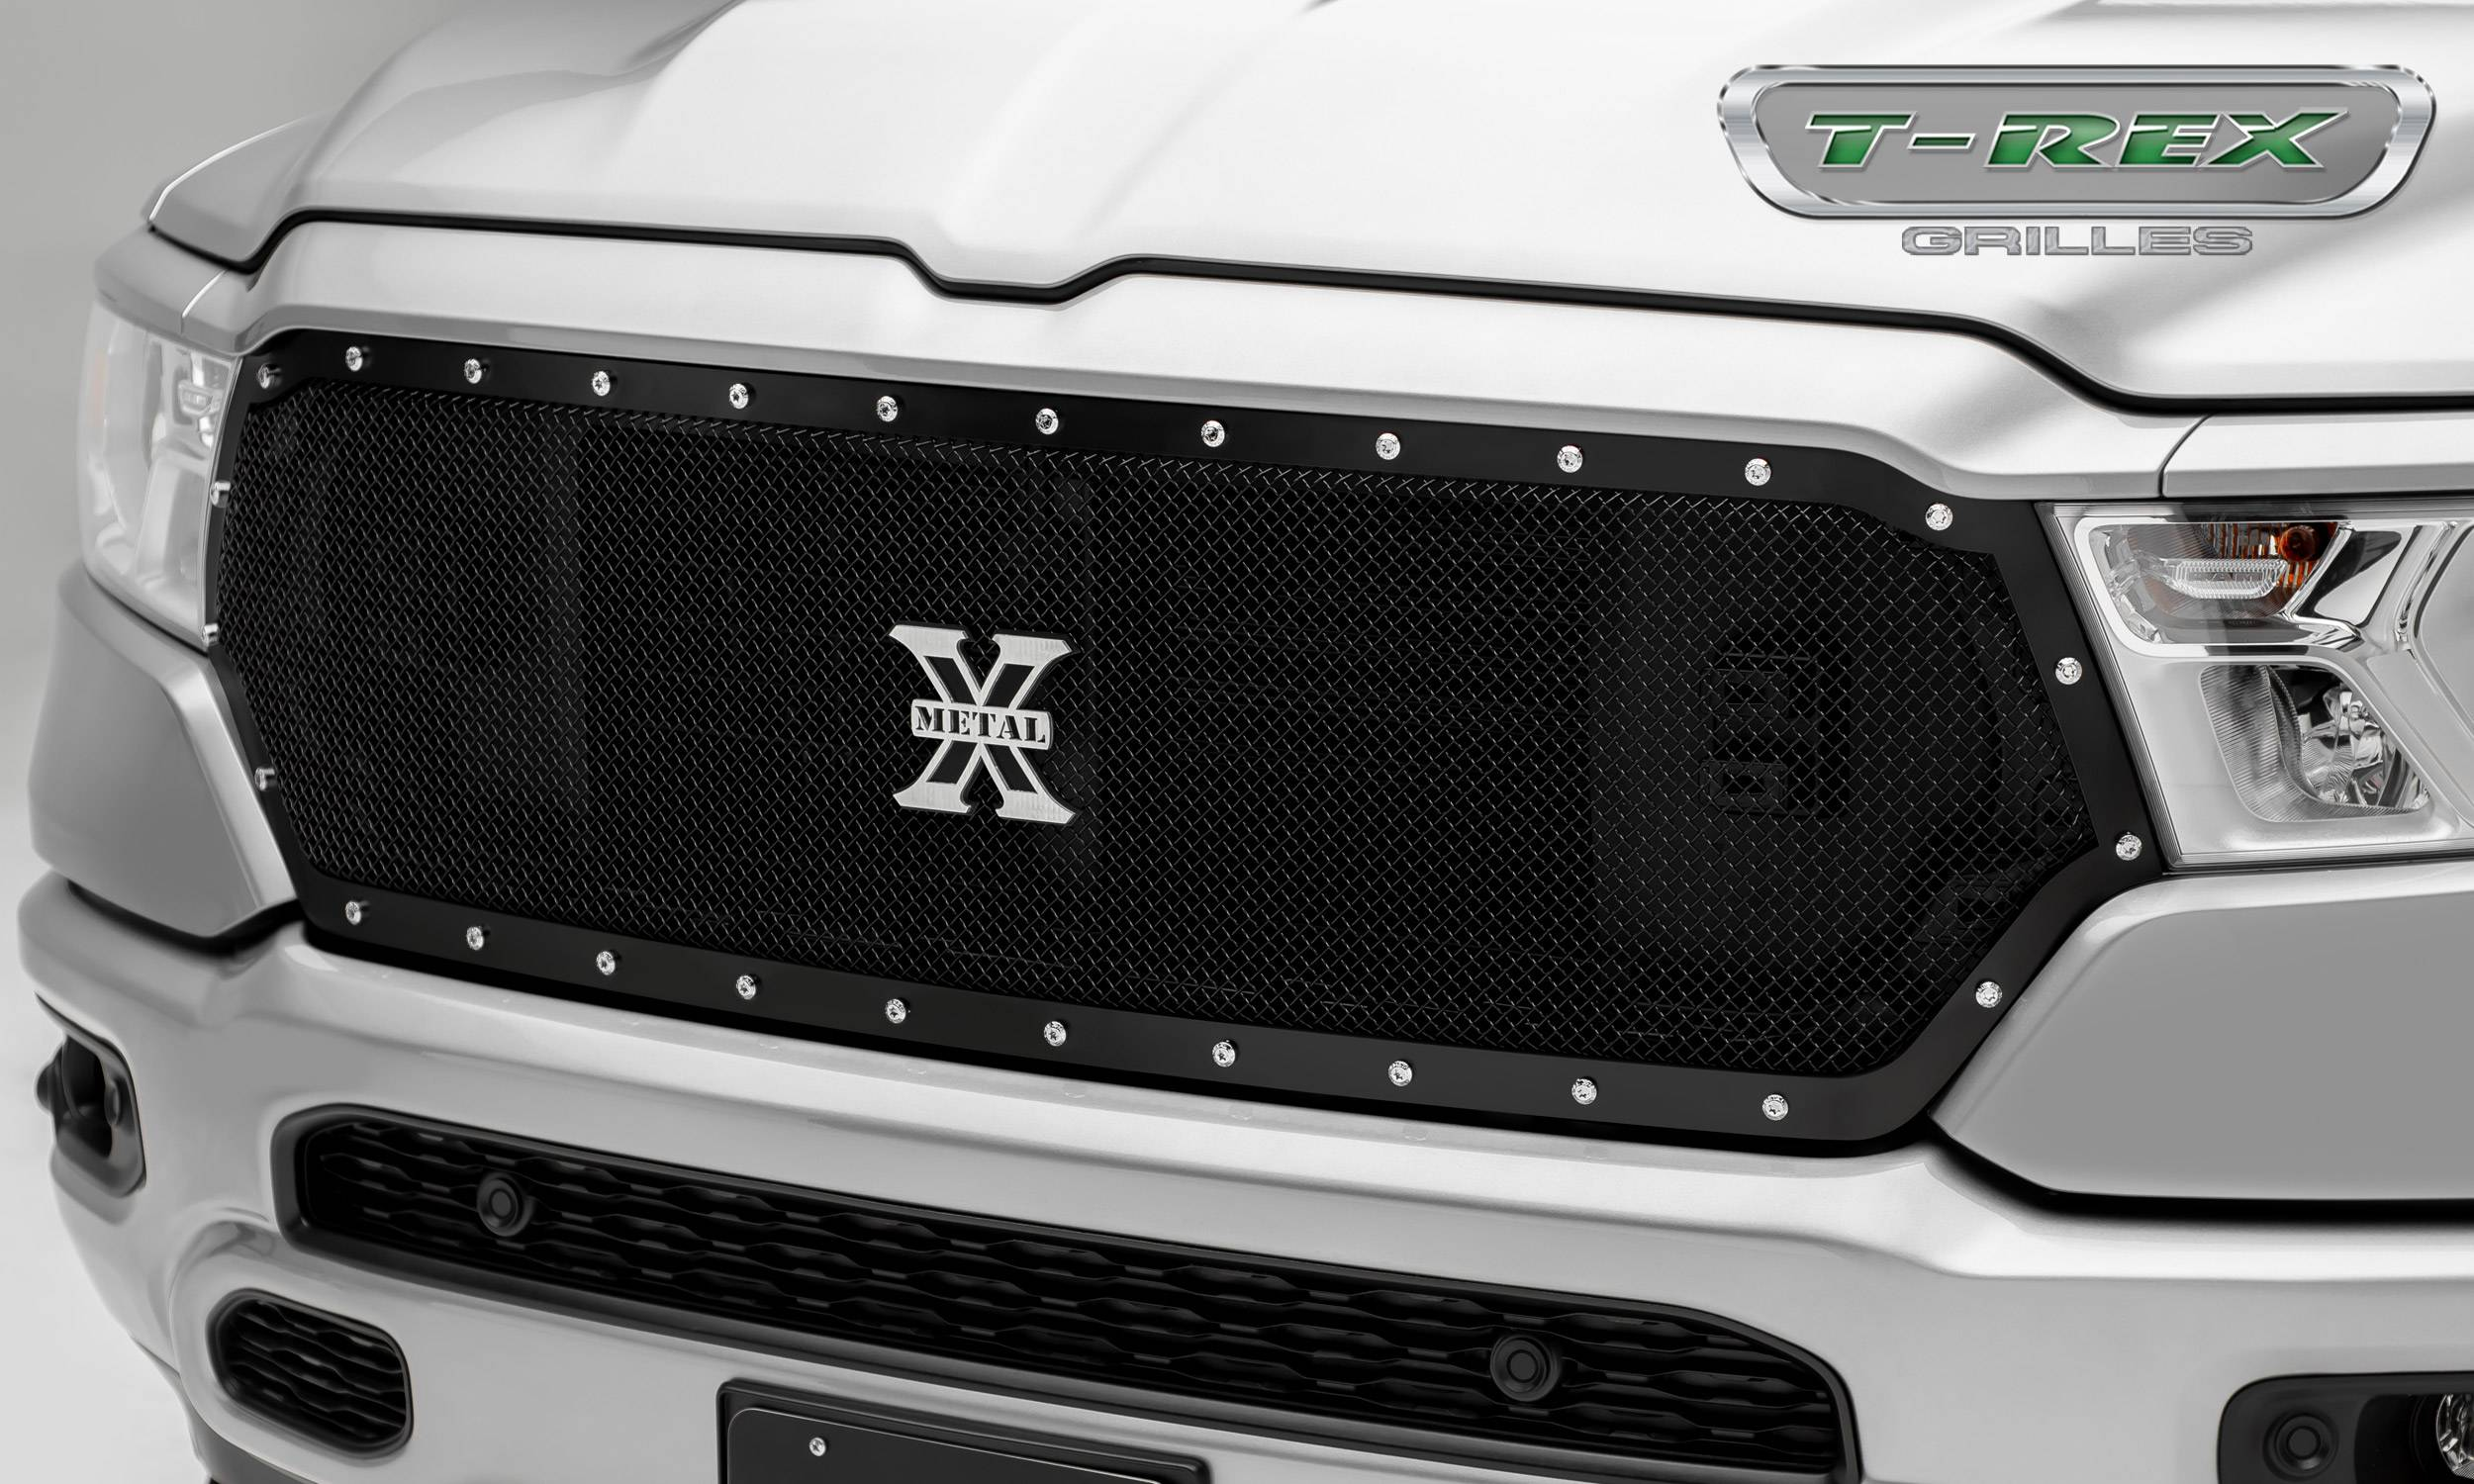 T-REX Grilles - RAM 1500 - X-Metal Series - Main Grille Replacement w/ Formed Mesh & Chrome Studs - Black Powder Coat Finish - Pt # 6714651